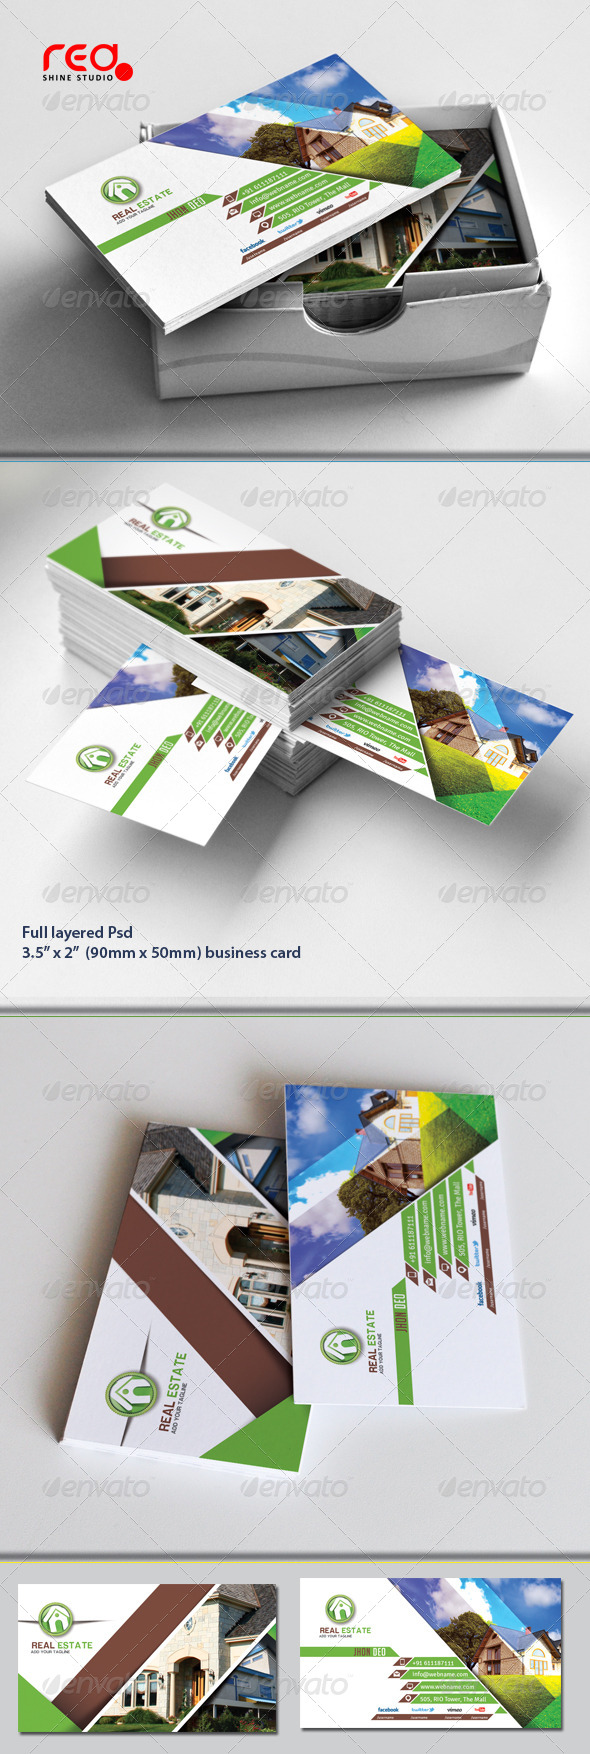 Real estate business card templates designs from graphicriver reheart Image collections